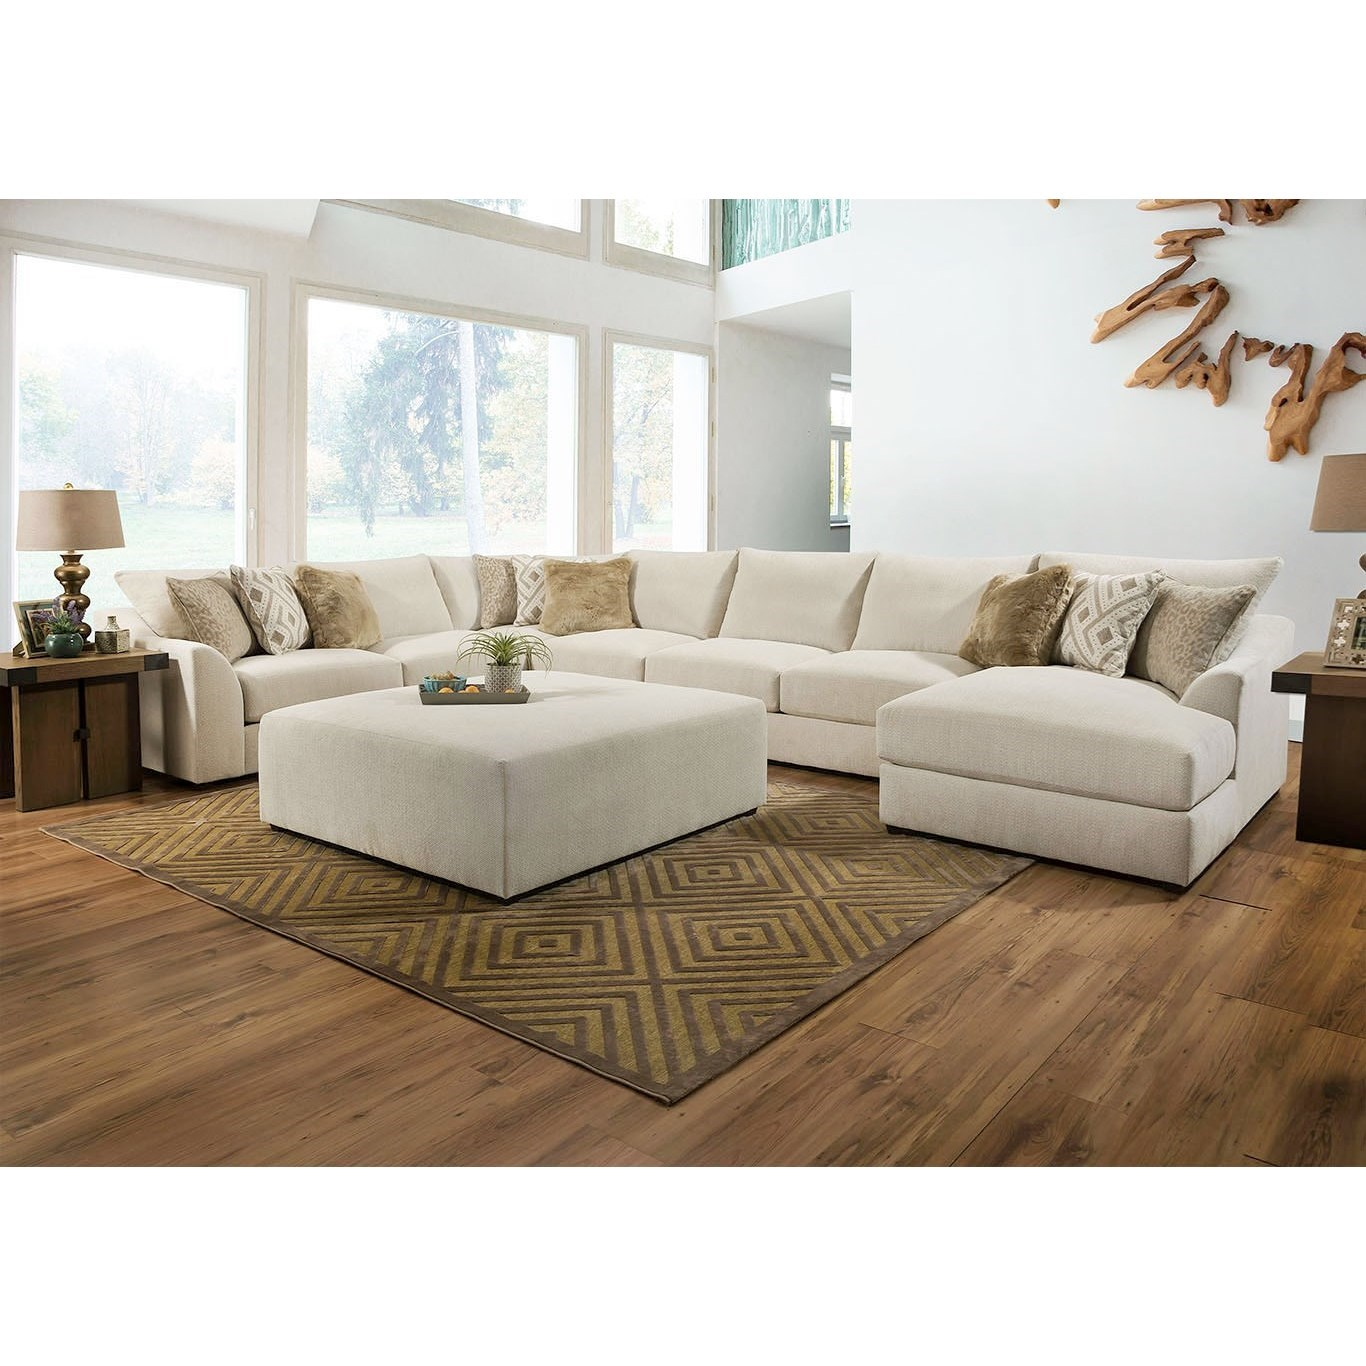 Vivian Sectional Sofa by Lane at Powell's Furniture and Mattress